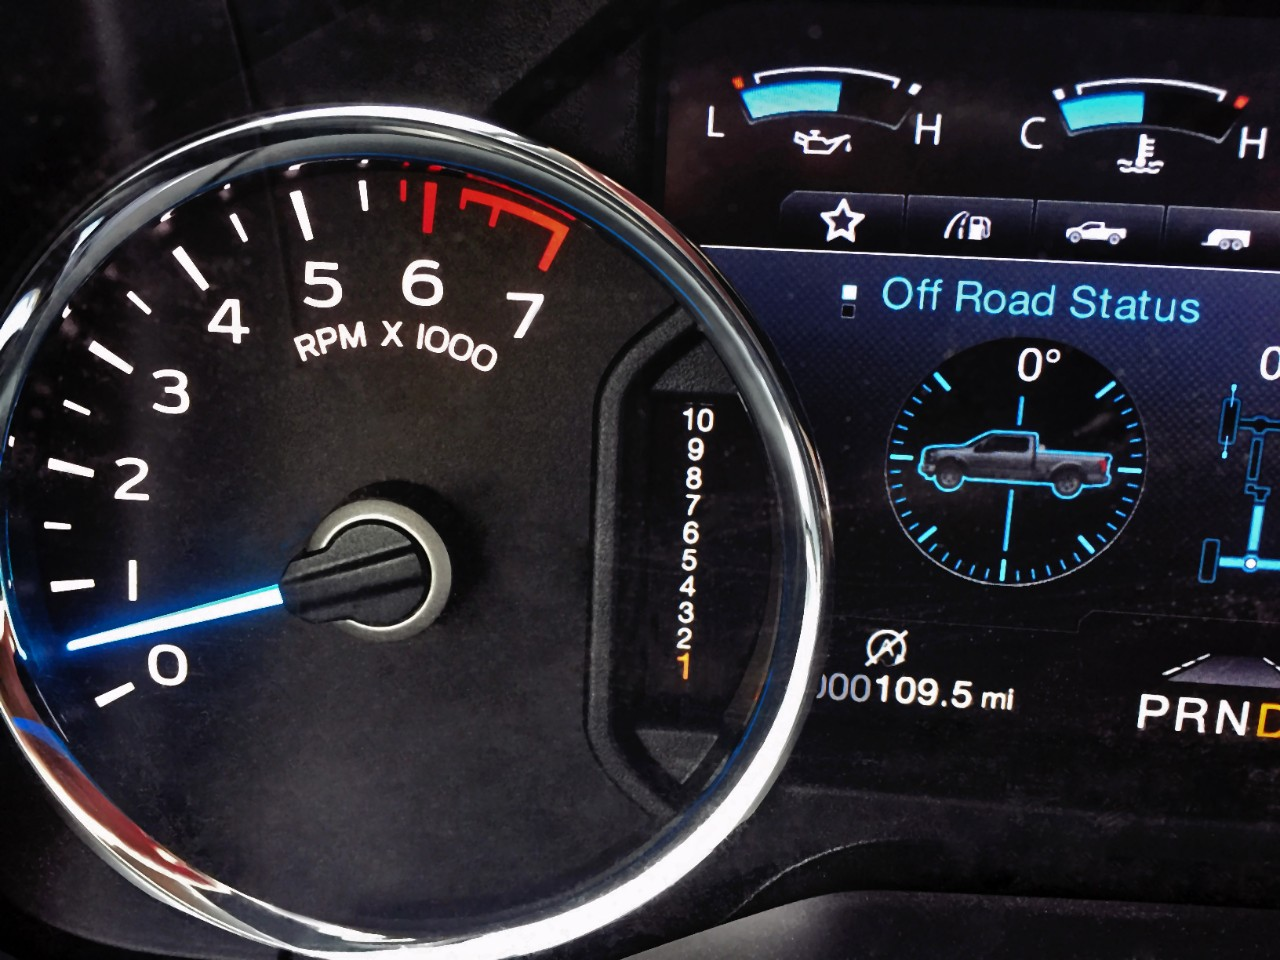 2017 Ford F 150 Instrument Cluster Features 10 Speed